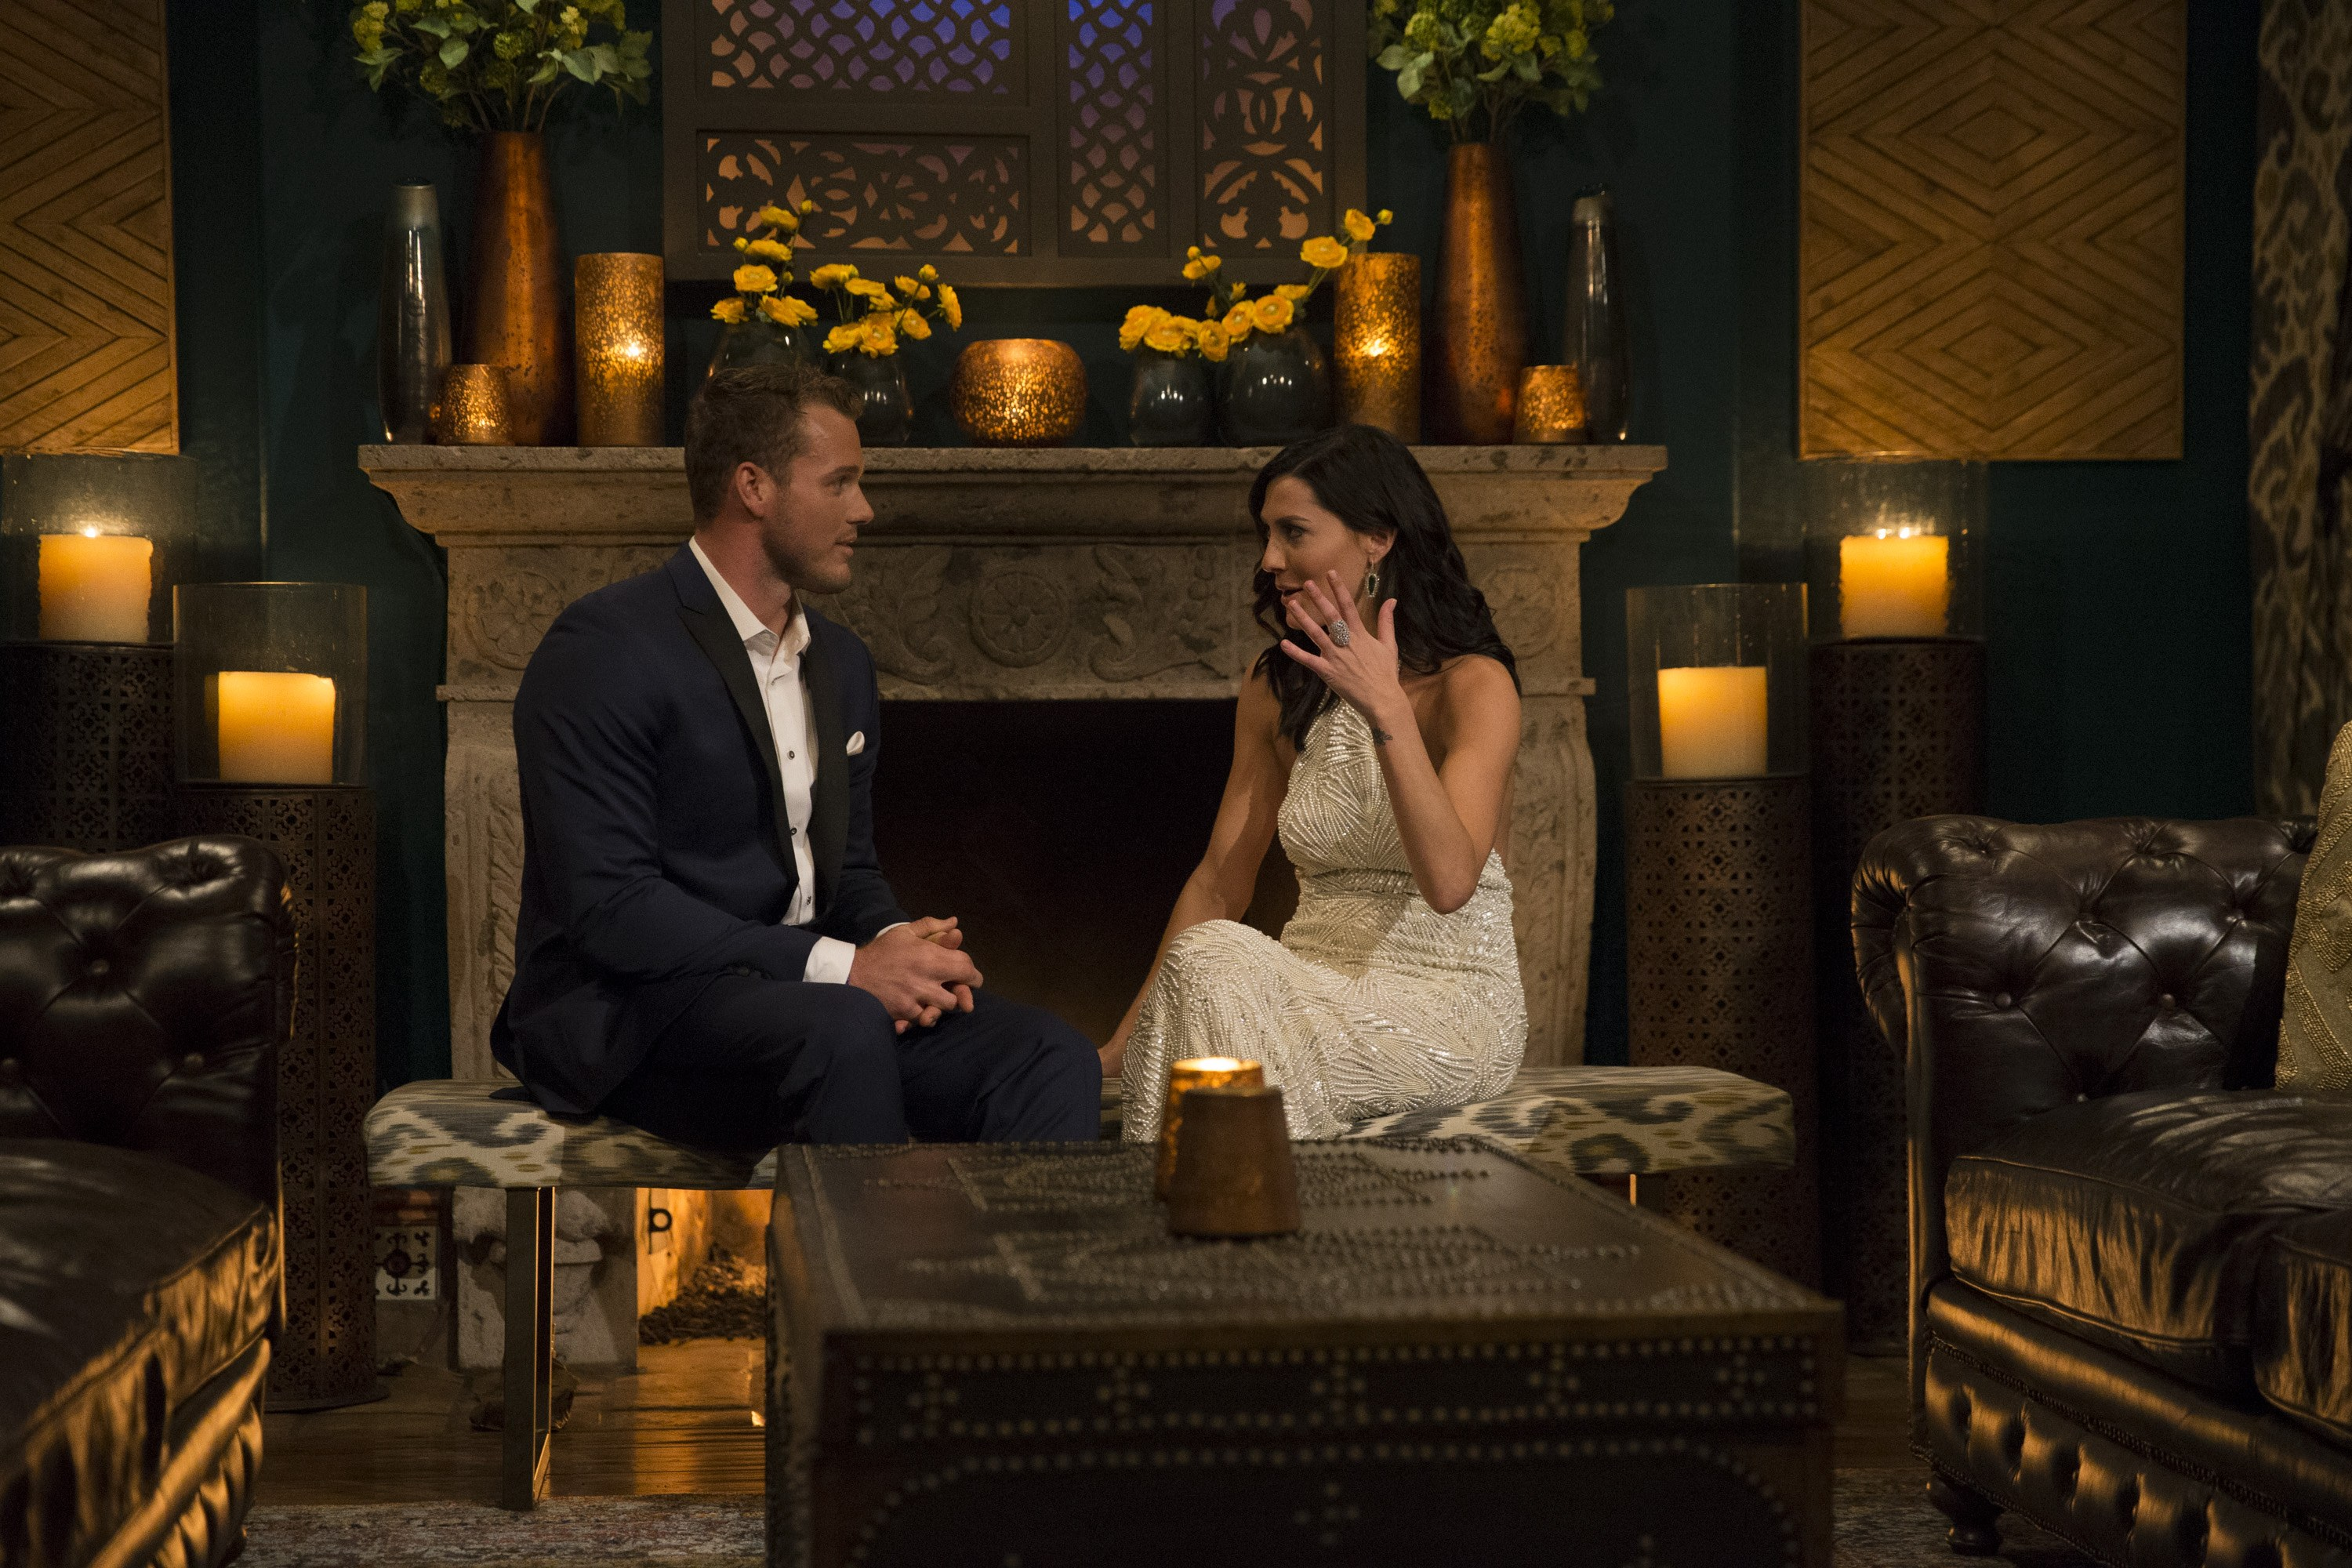 """THE BACHELORETTE - """"Episode 1401"""" - Fan favorite Becca Kufrin captured AmericaÕs heart when she found herself at the center of one of the most gut-wrenching Bachelor breakups of all time. Now the Minnesota girl next door returns for a second shot at love and gets to hand out the roses, searching for her happily-ever-after in the 14th edition of ABCÕs hit series ÒThe Bachelorette,Ó premiering MONDAY, MAY 28 (8:00-10:01 p.m. EDT), on The ABC Television Network. (ABC/Paul Hebert)<br />"""